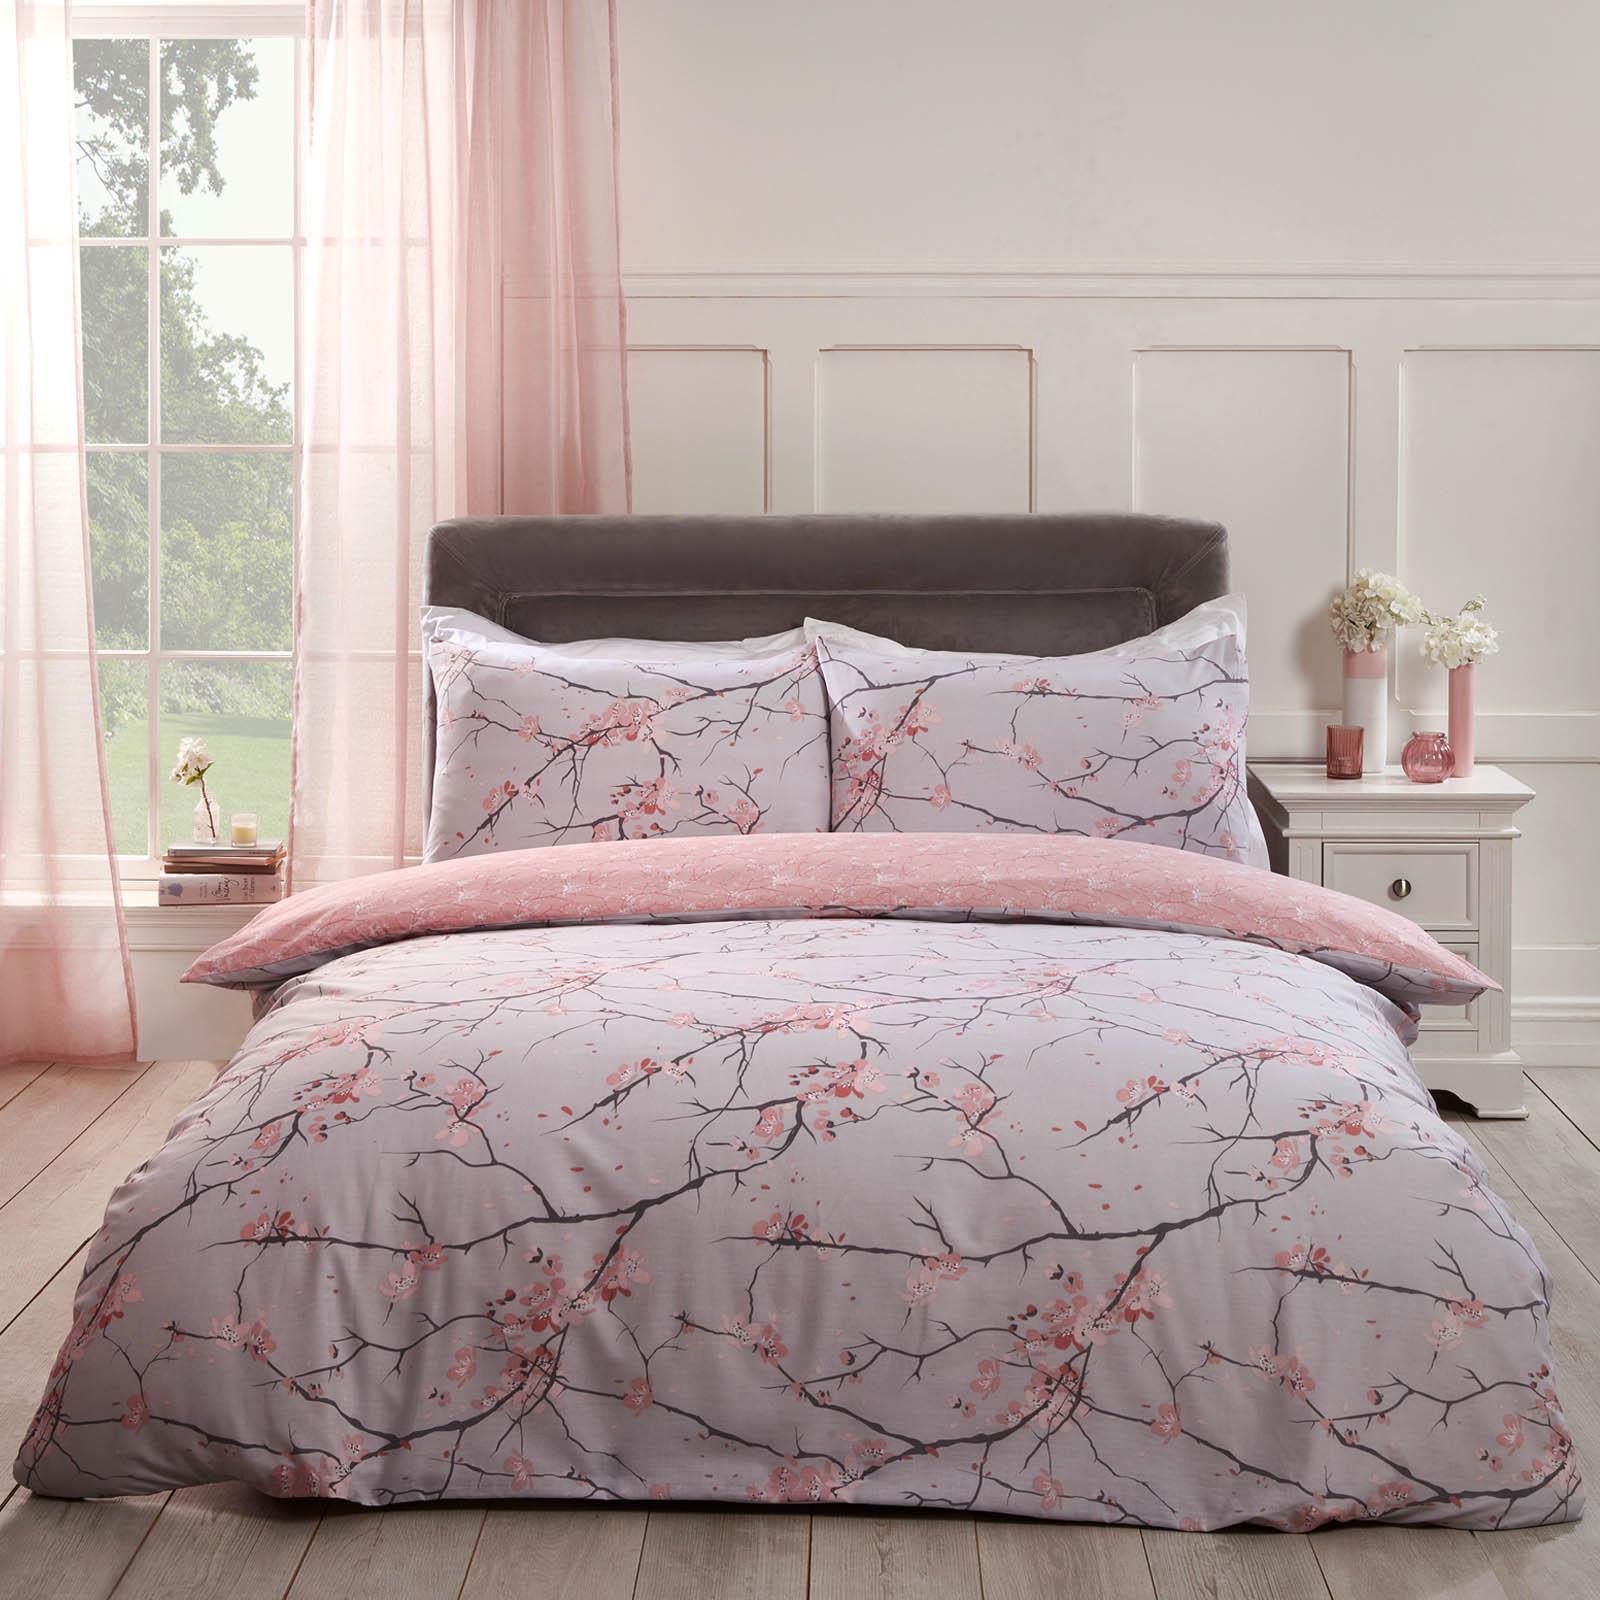 thumbnail 10 - Dreamscene Spring Blossoms Duvet Cover with Pillowcases Bedding Set Blush Ochre